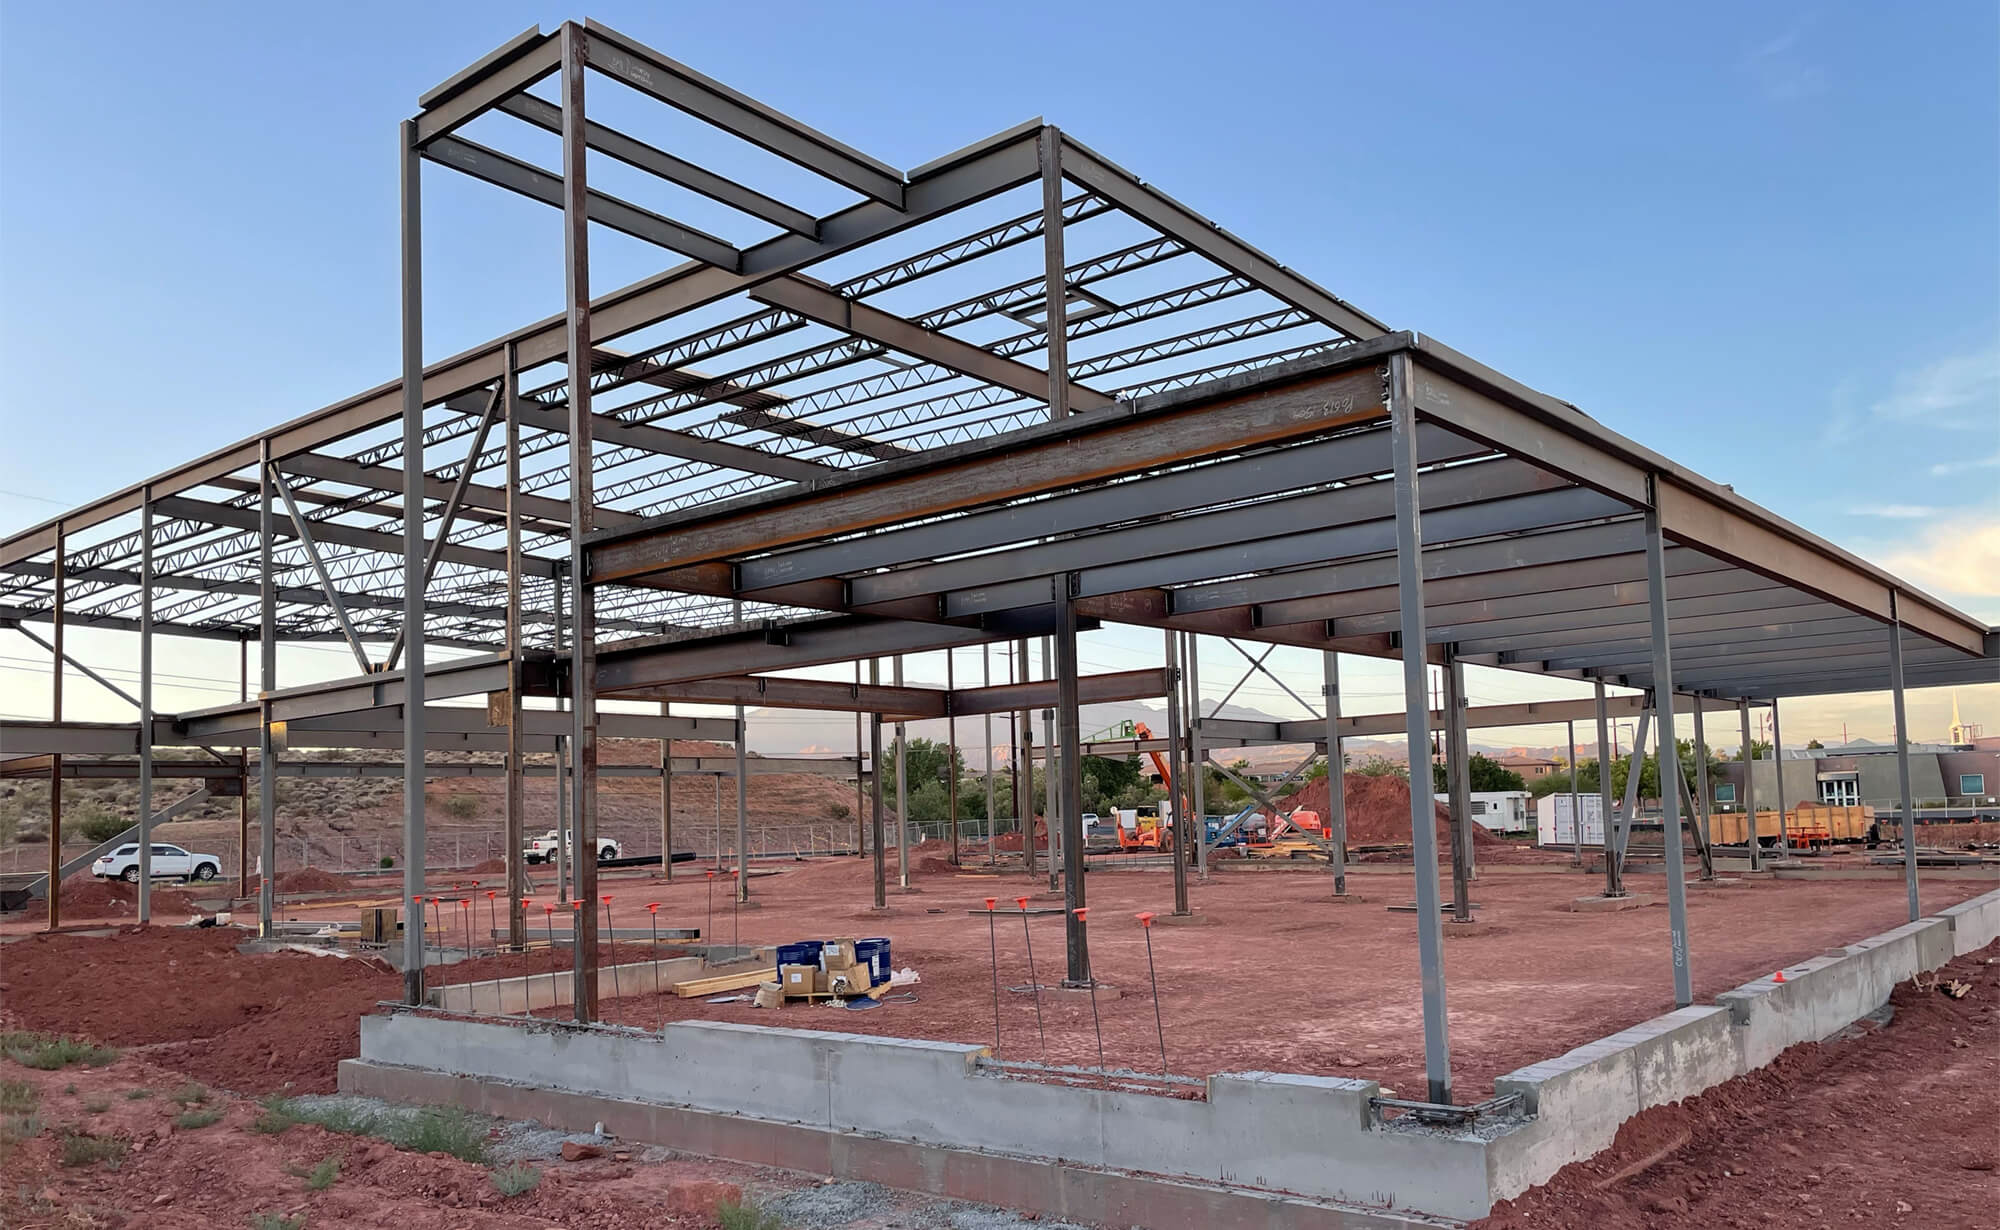 Riverside Clinic building starting to take shape as steel frame is constructed